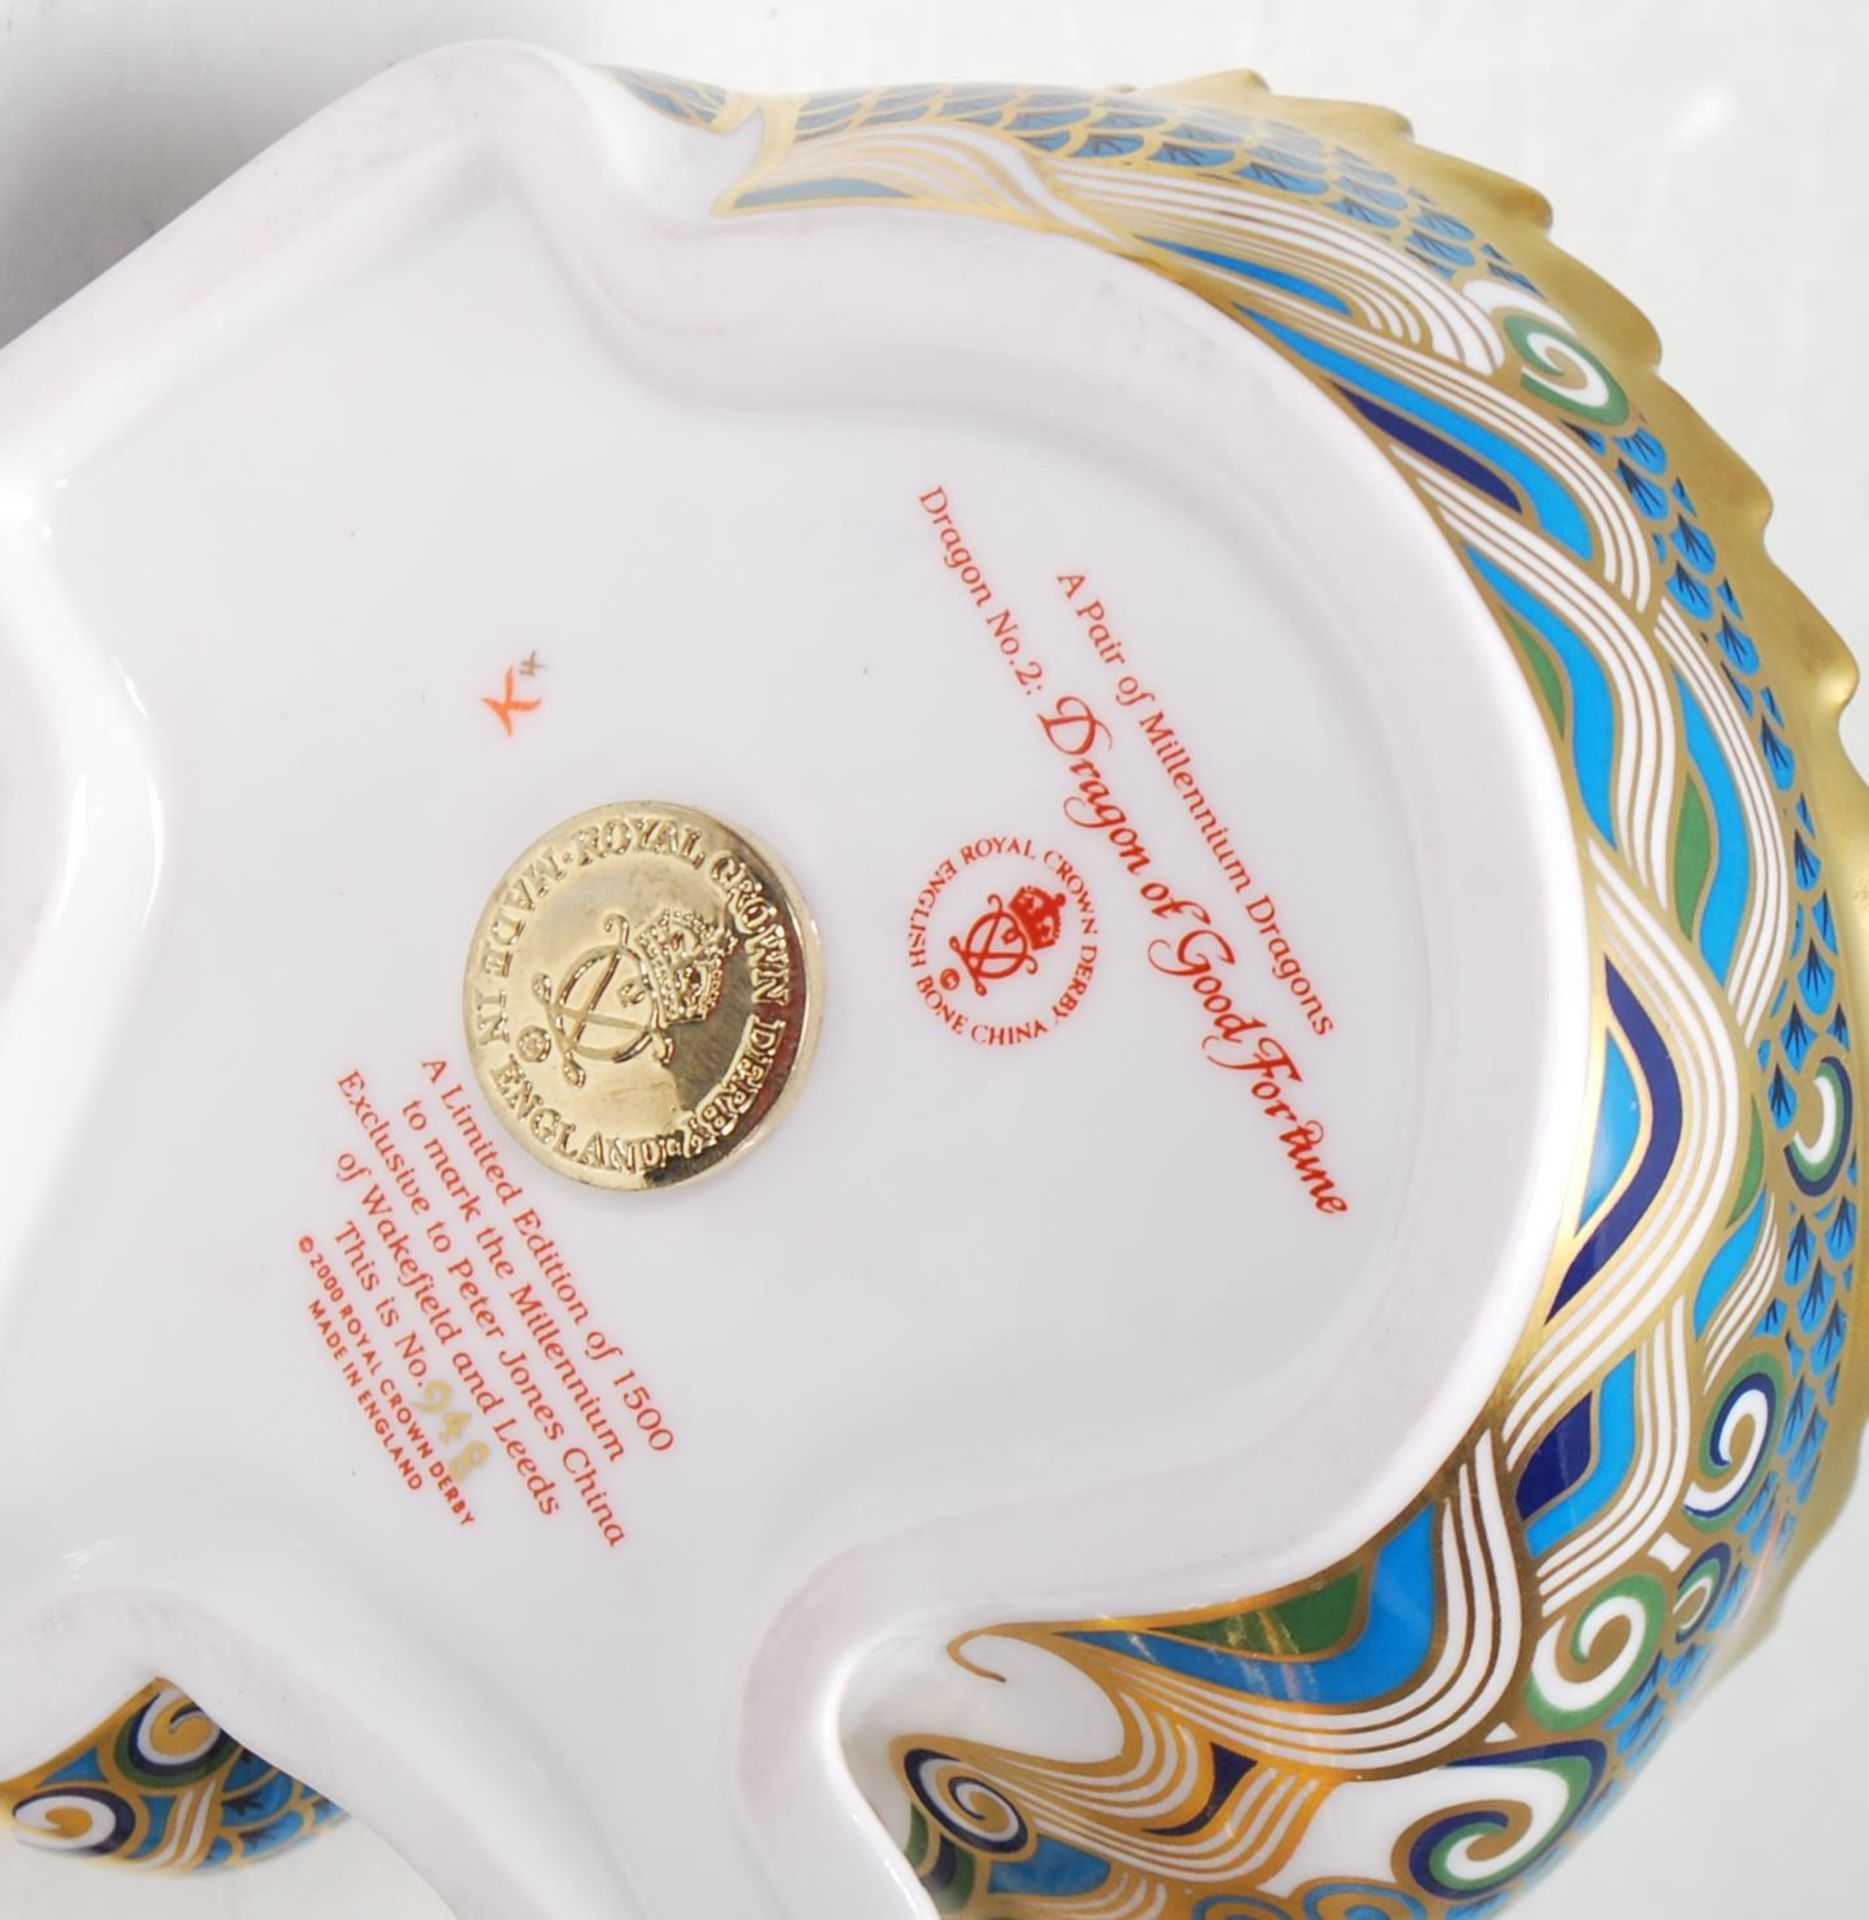 TWO ROYAL DOULTON PAPERWEIGHTS - Image 6 of 7